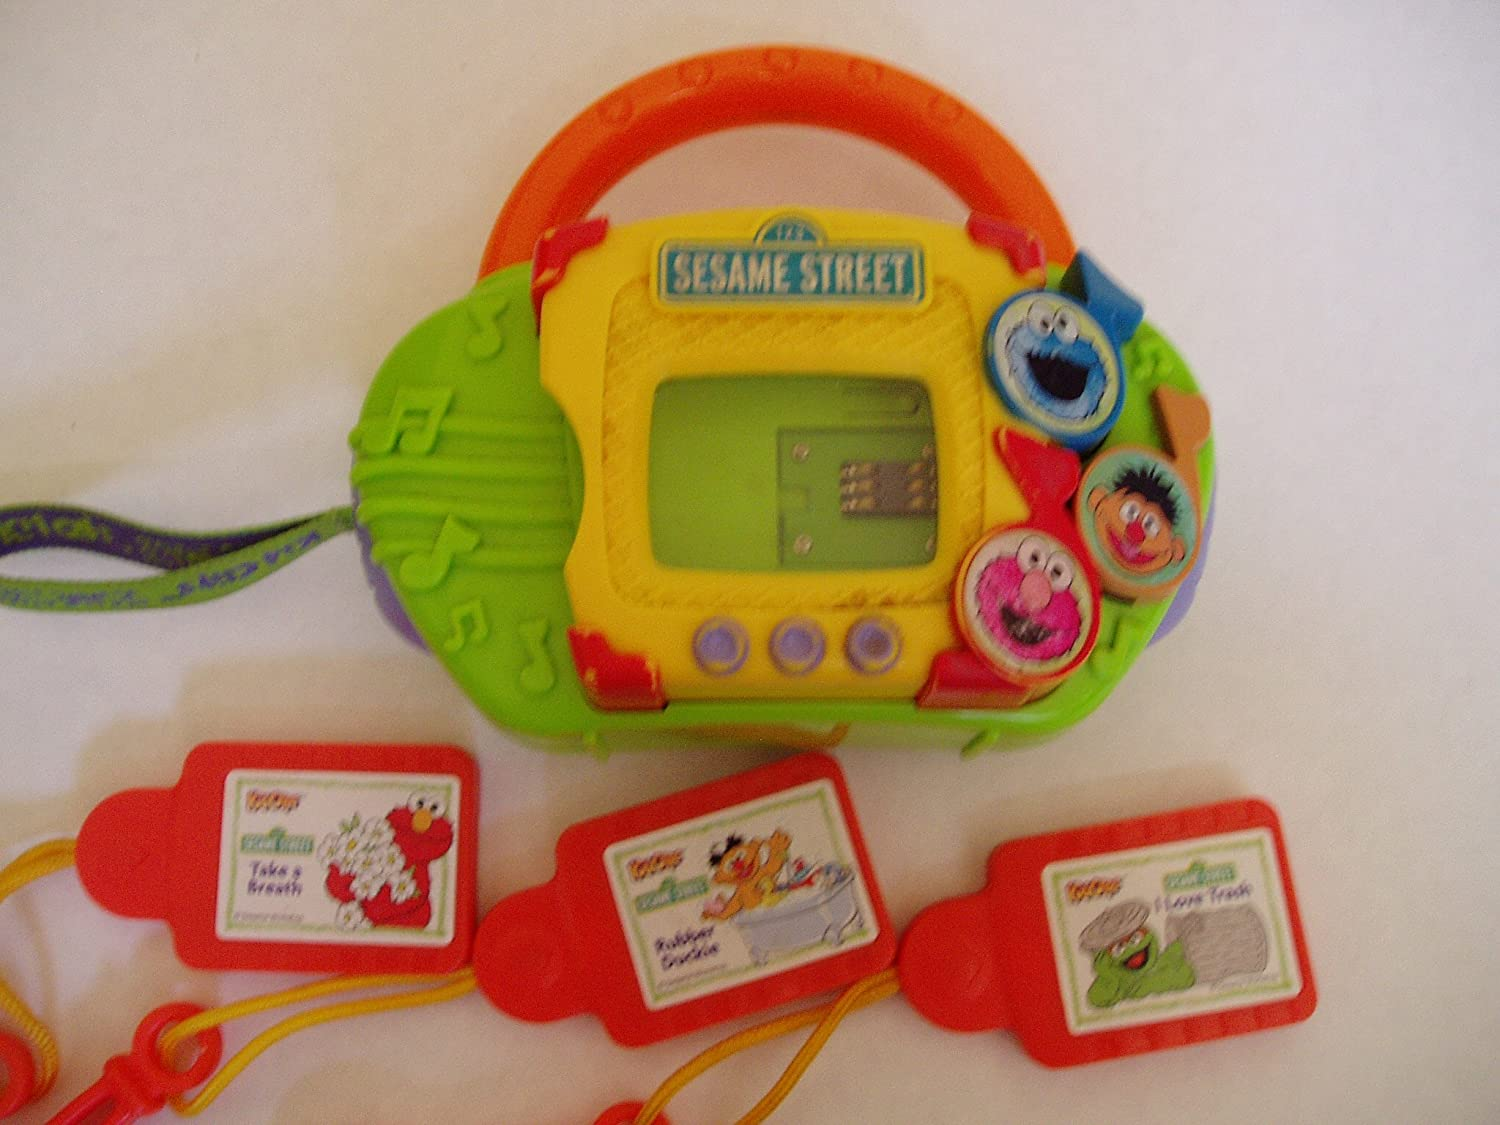 SESAME STREET KIDCLIPS MUSIC PLAYER Hasbro